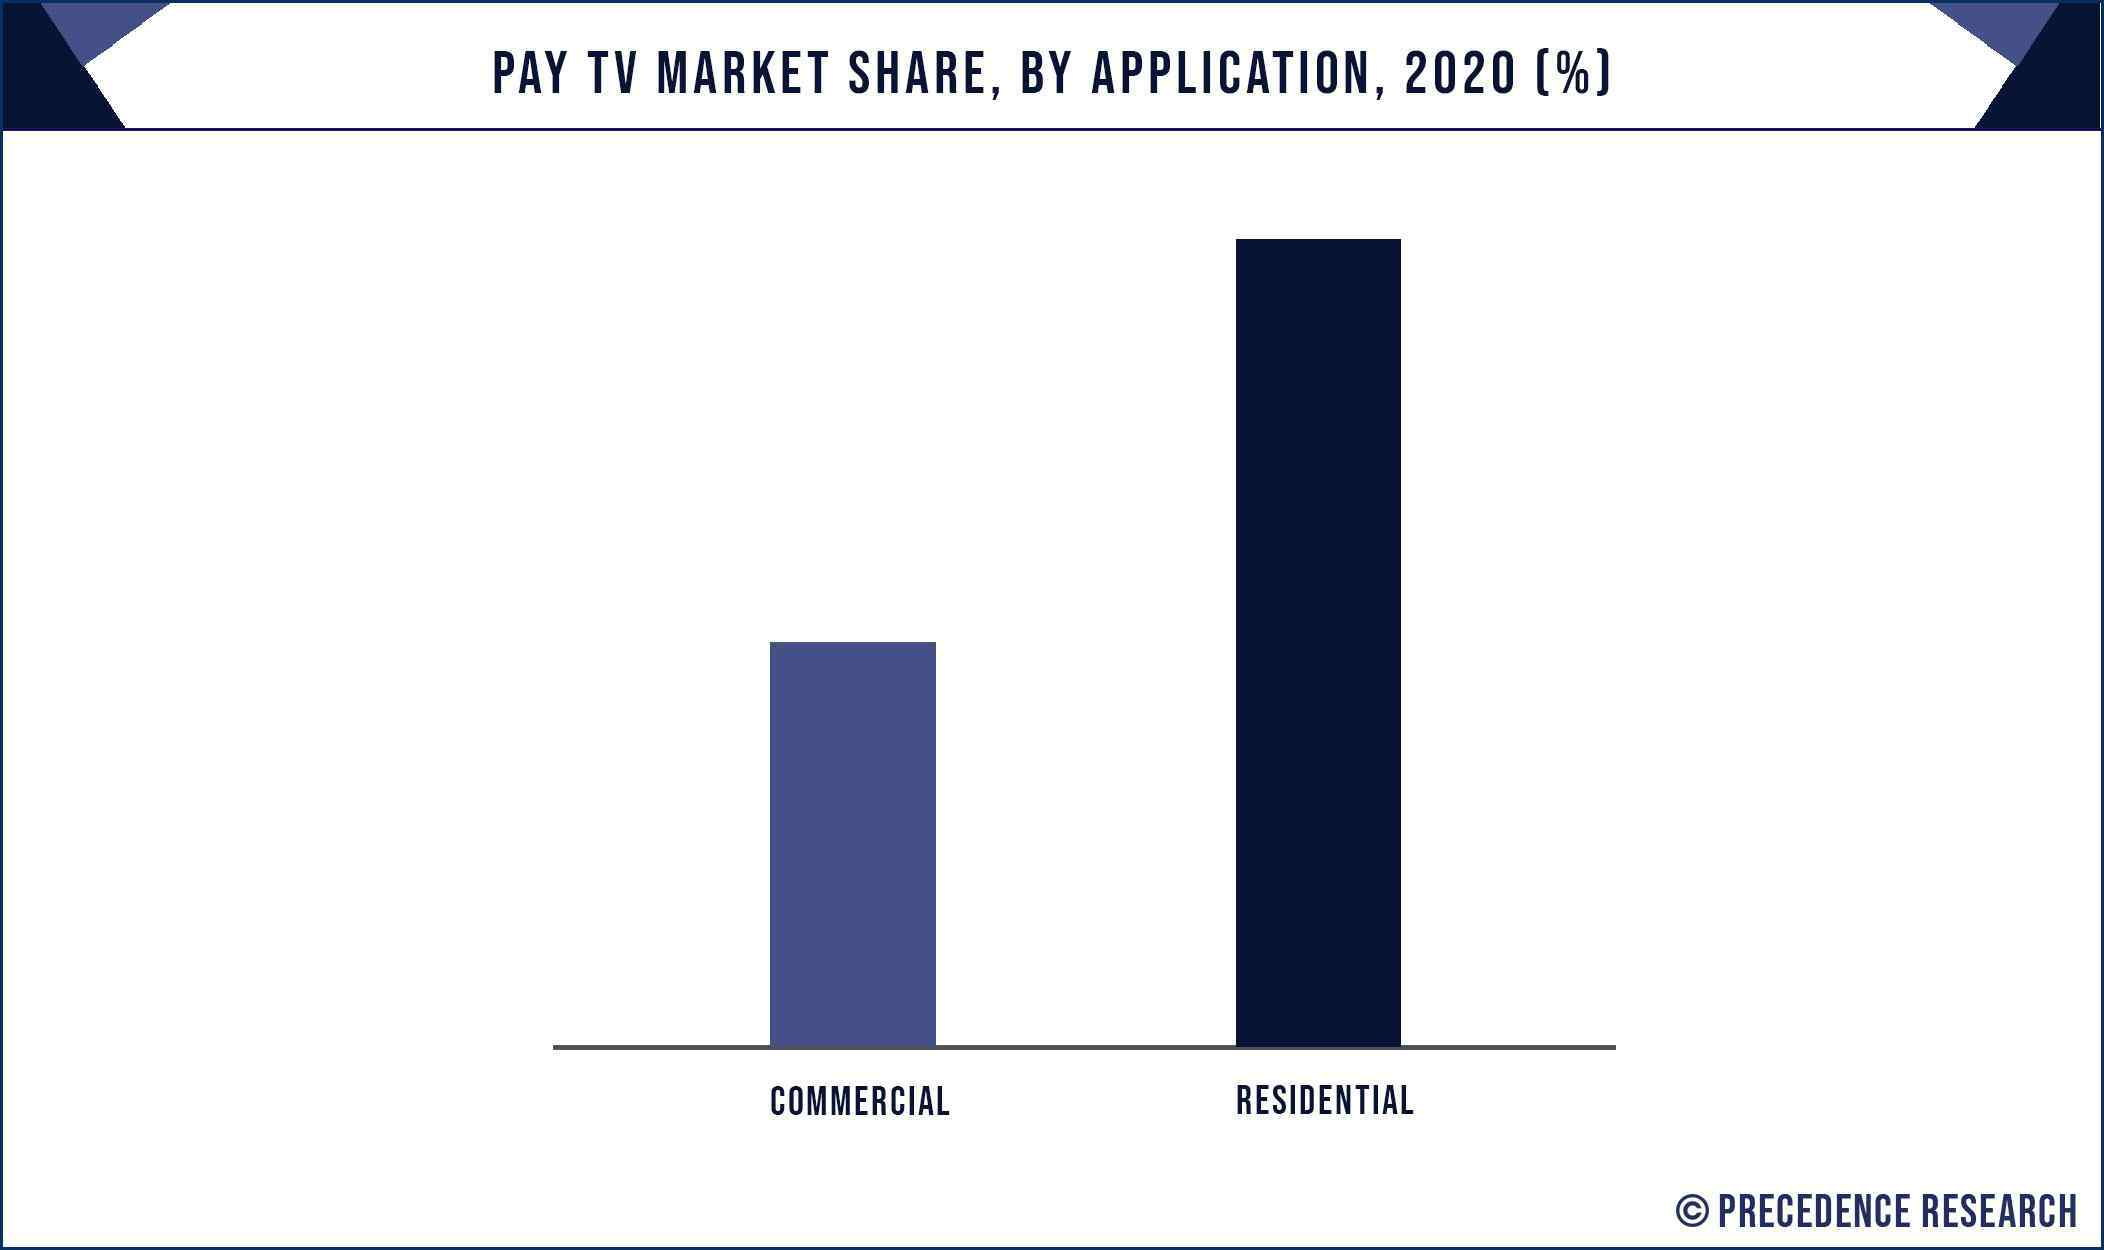 Pay TV Market Share, By Application, 2020 (%)